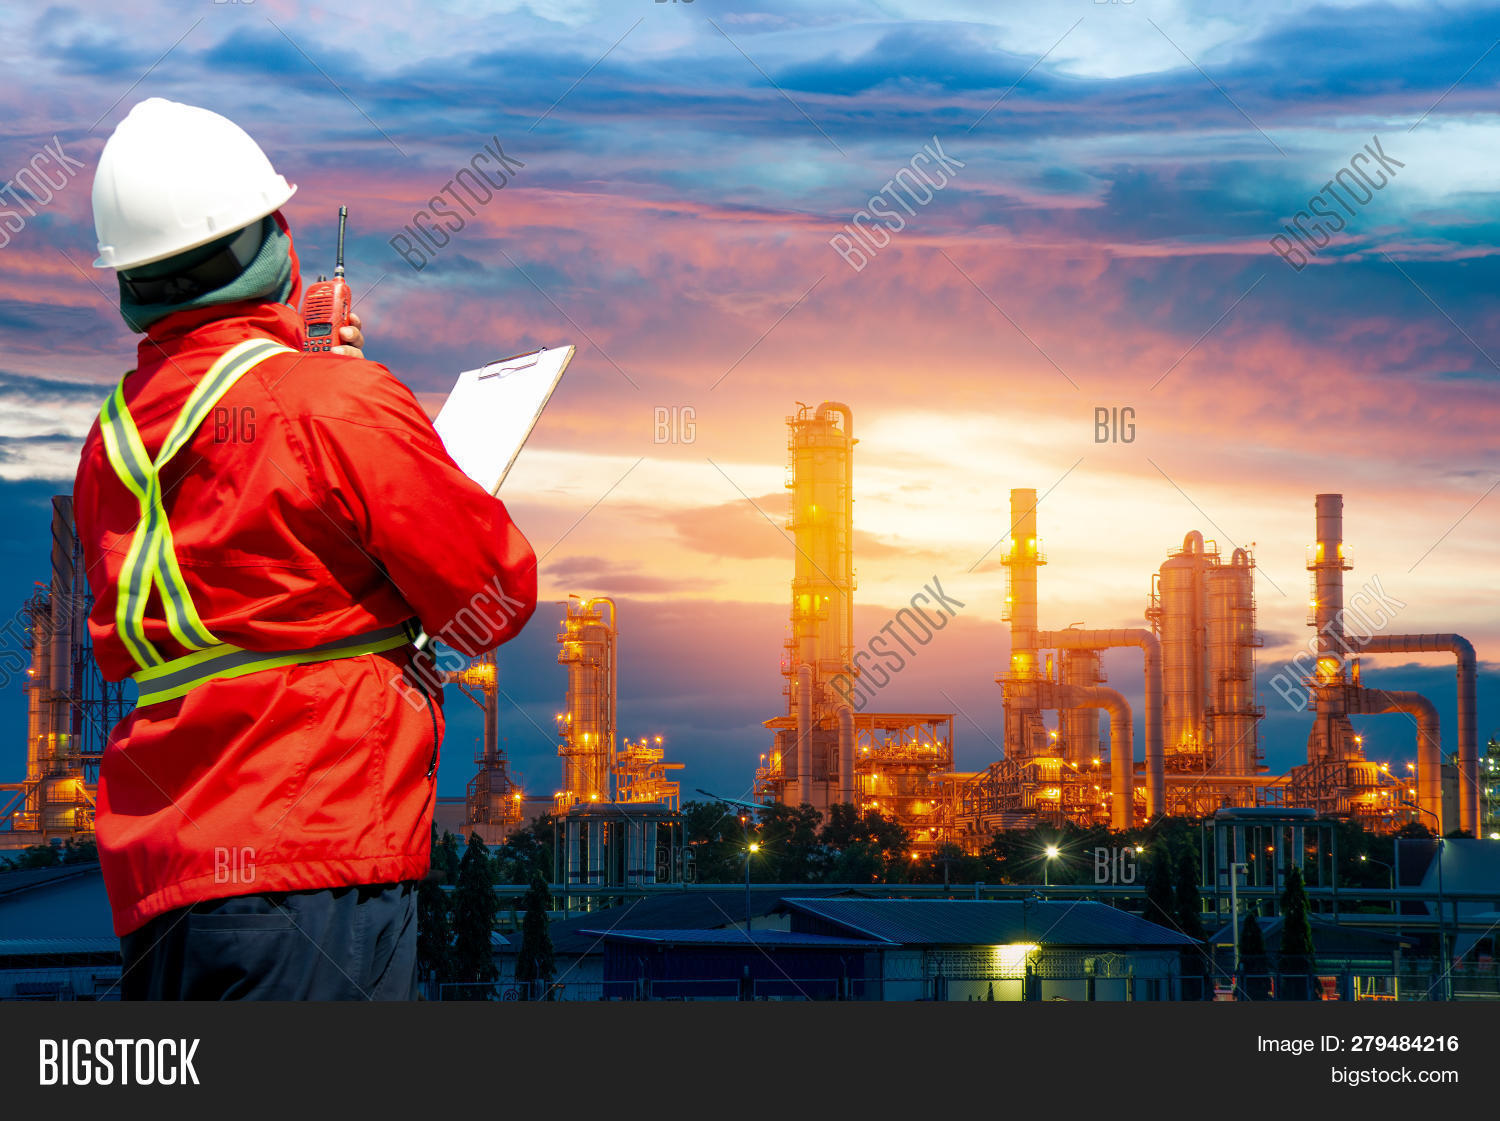 Engineering Man With White Safety Helmet Standing In Front Of Oil Refinery Building Structure In Hea